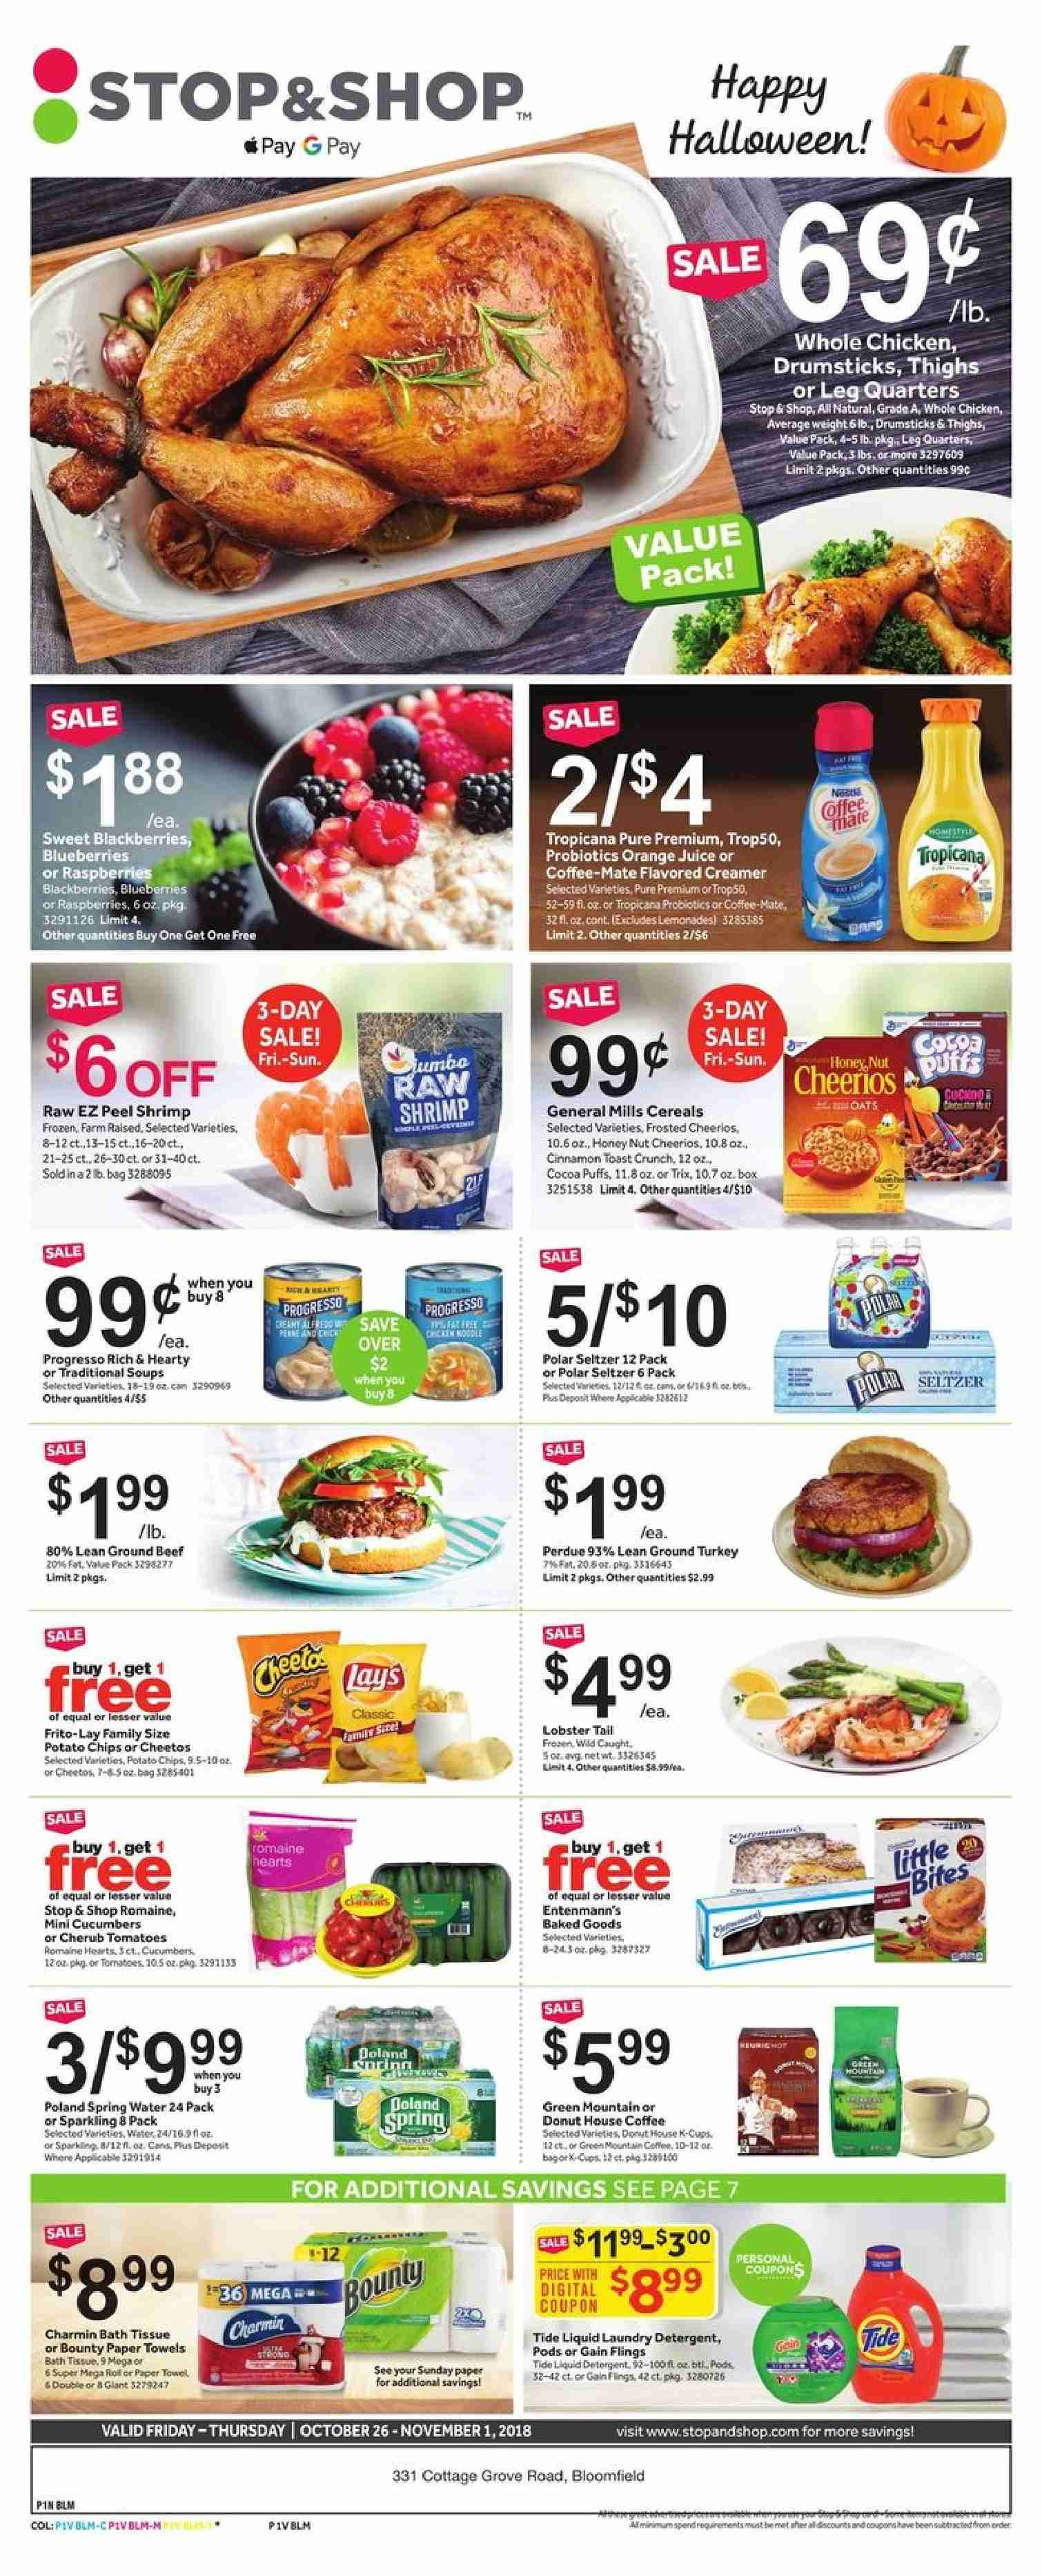 Stop & Shop Flyer  - 10.26.2018 - 11.01.2018. Page 1.